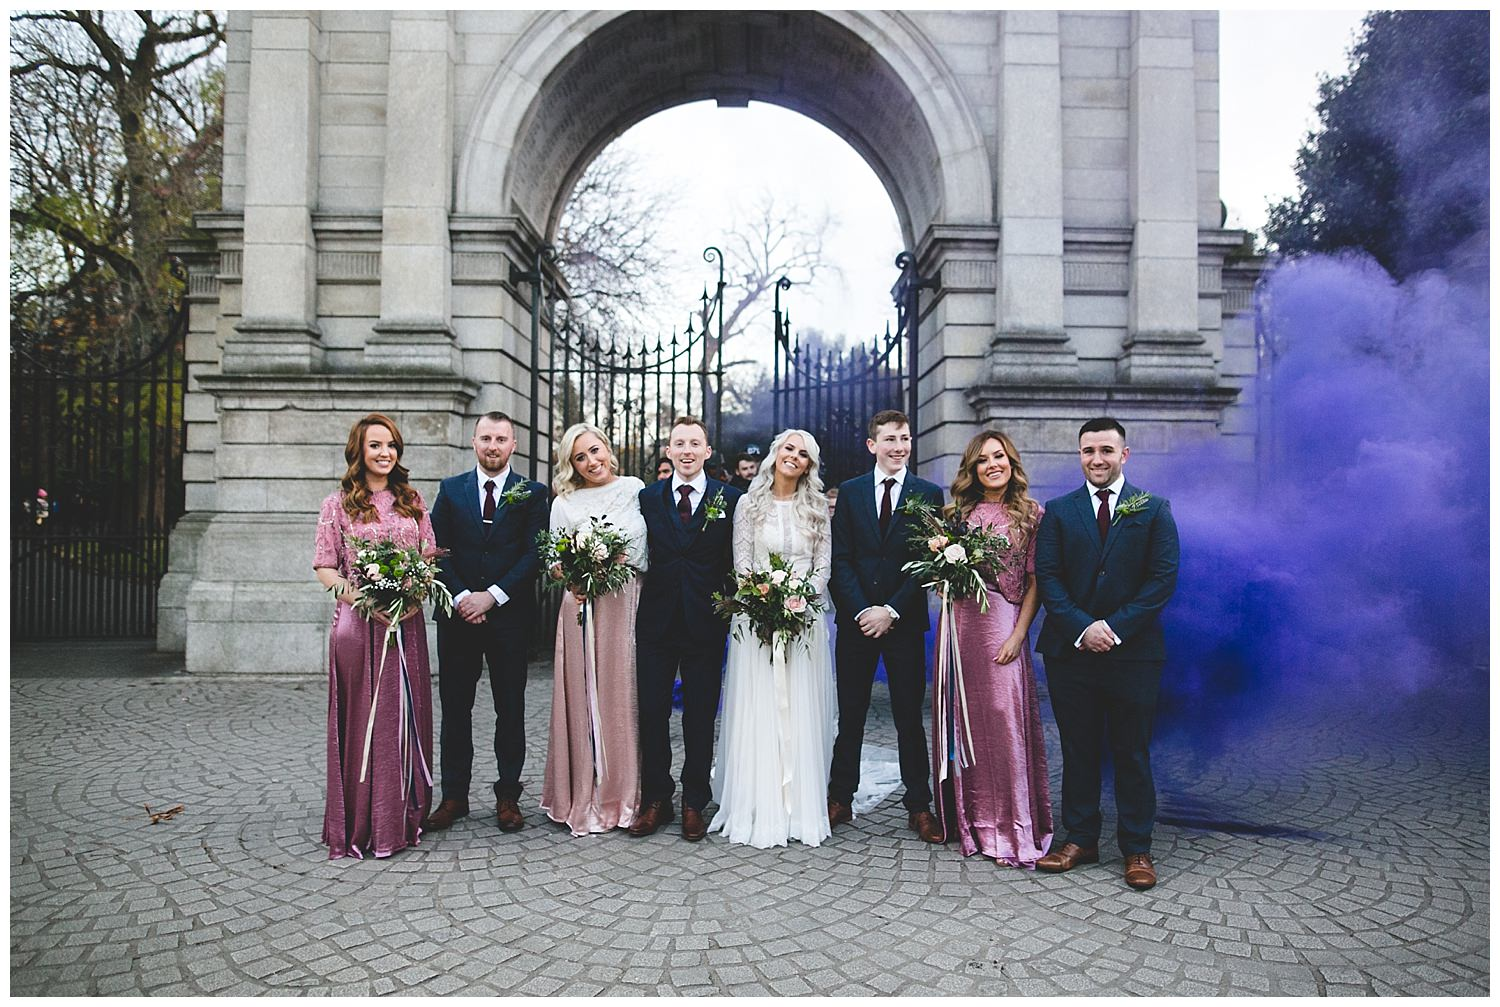 Wild things Wed Photography Dublin City Wedding